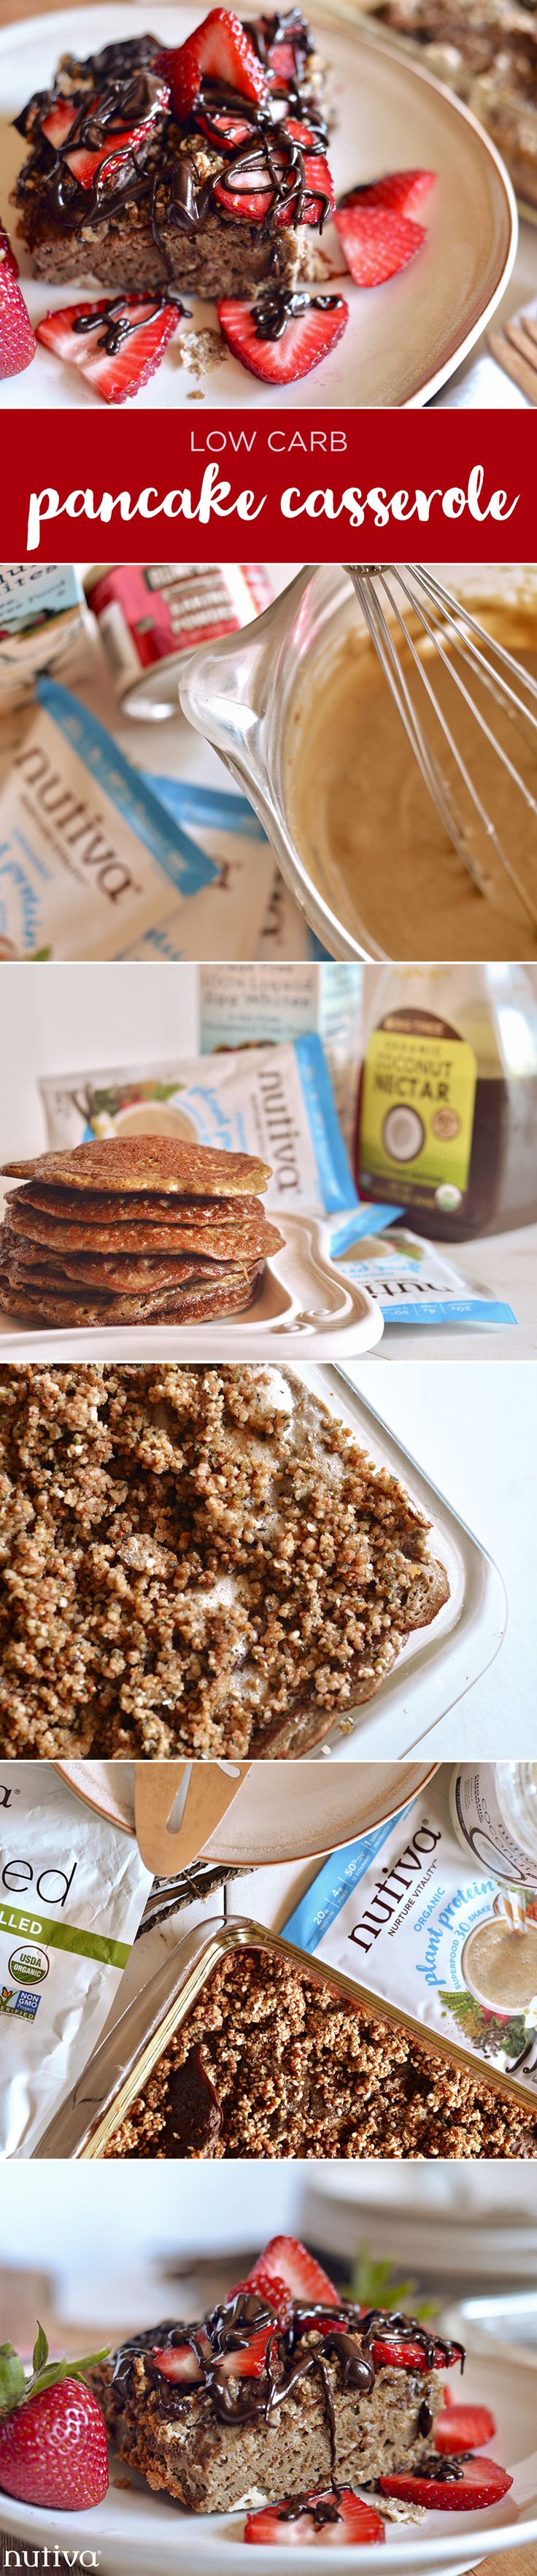 Low Carb Pancake Casserole Recipe kitchen.nutiva.com